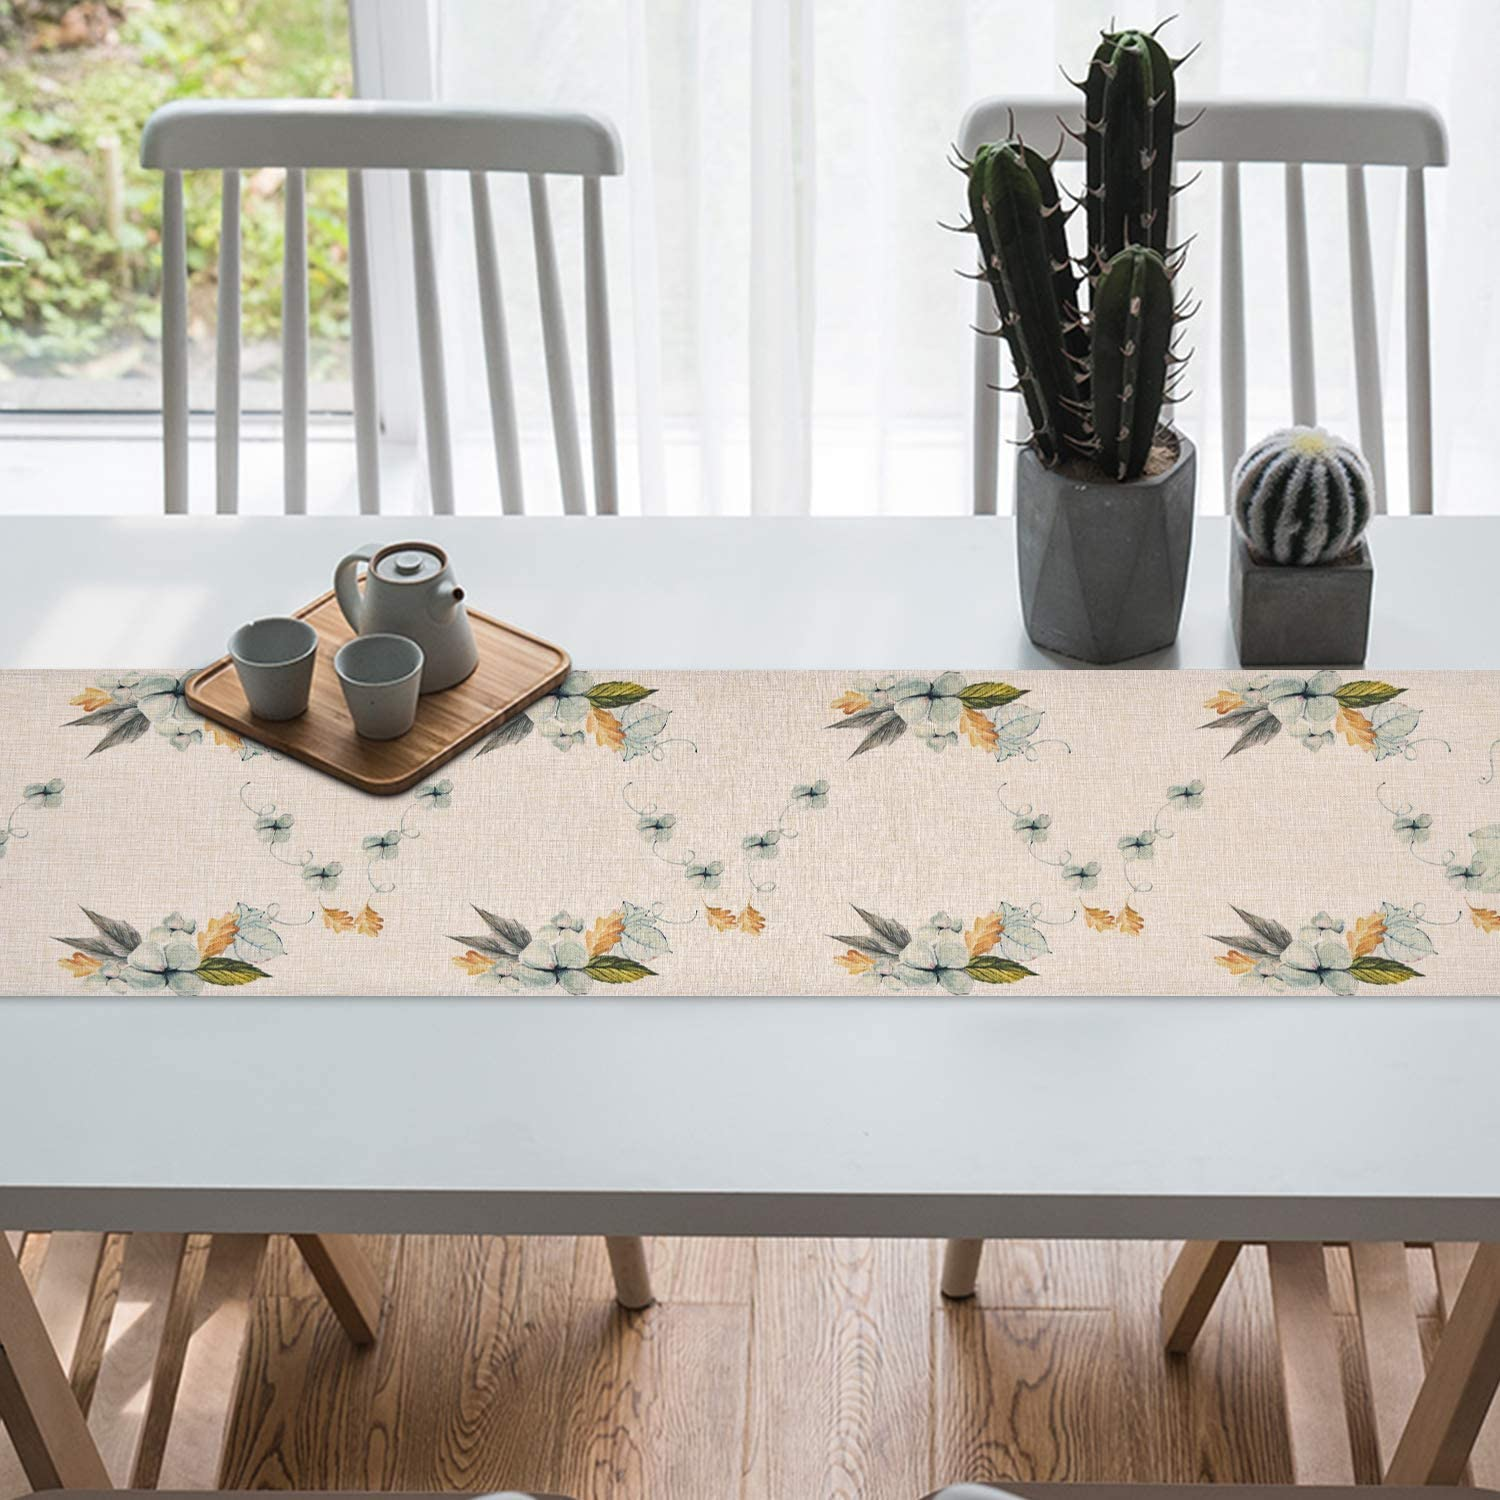 Wedding Smurfs Yingda Pumpkin Autumn Leaves Table Runner Watercolor Table Runner for Thanksgiving Day Dinner Parties 14 /× 70 inches Autumn Fall Indoor and Outdoor Parties Catering Events